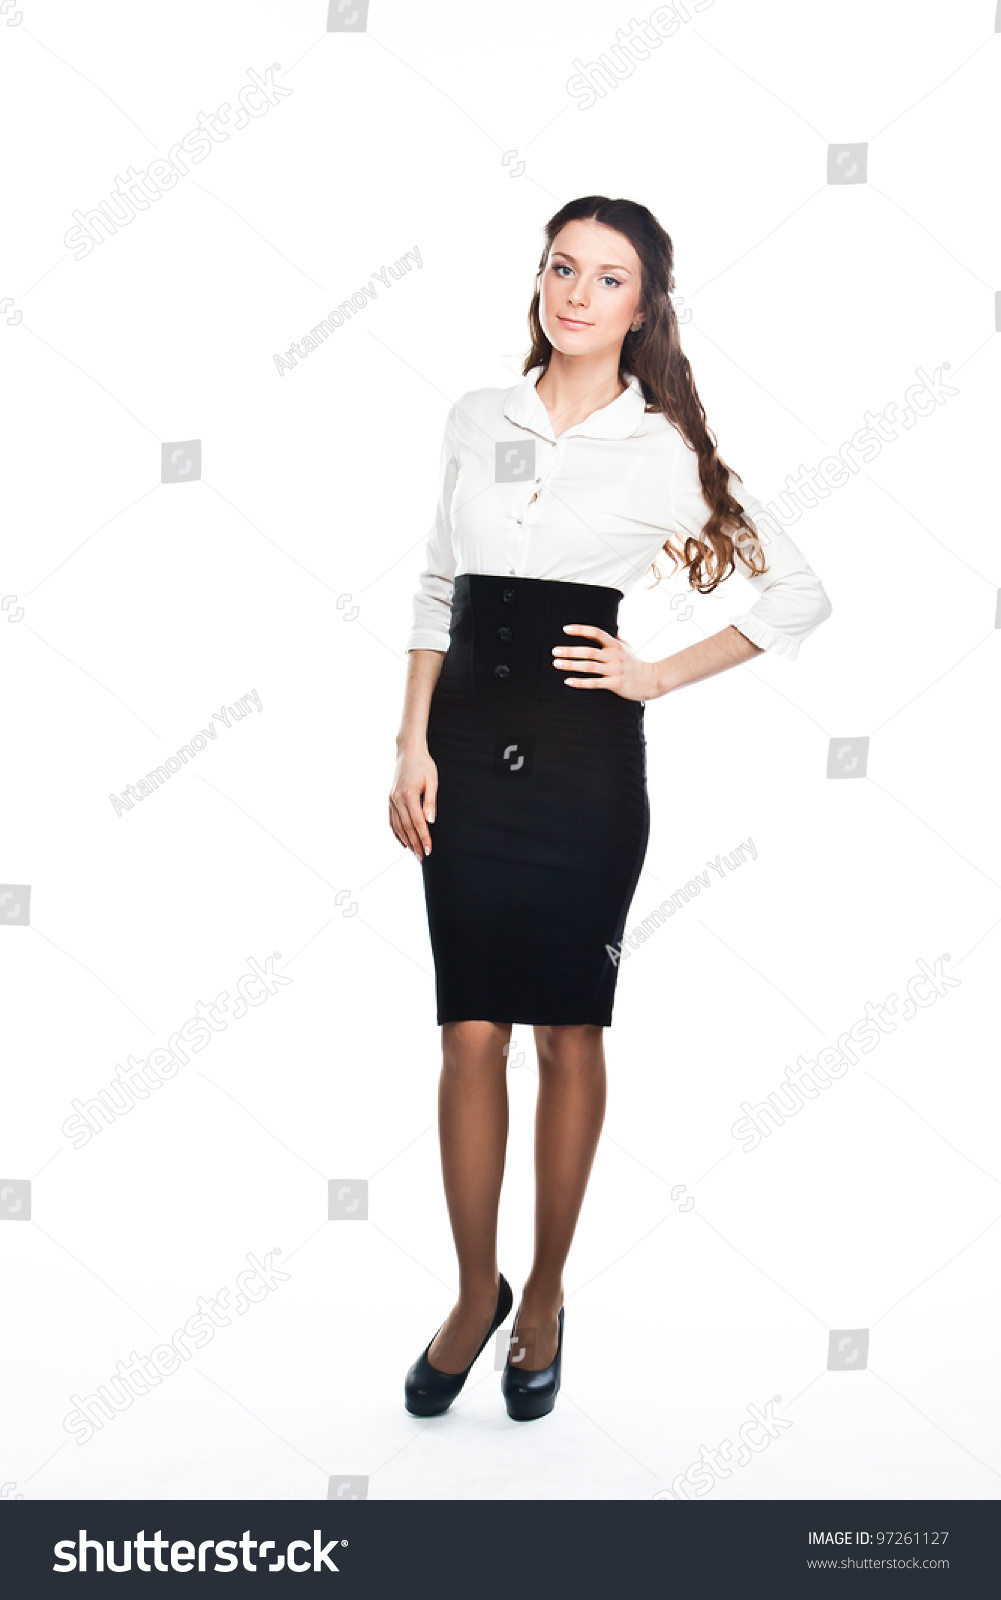 0c0ff322294006 Portrait of a young and beautiful business lady in a white blouse and black  skirt